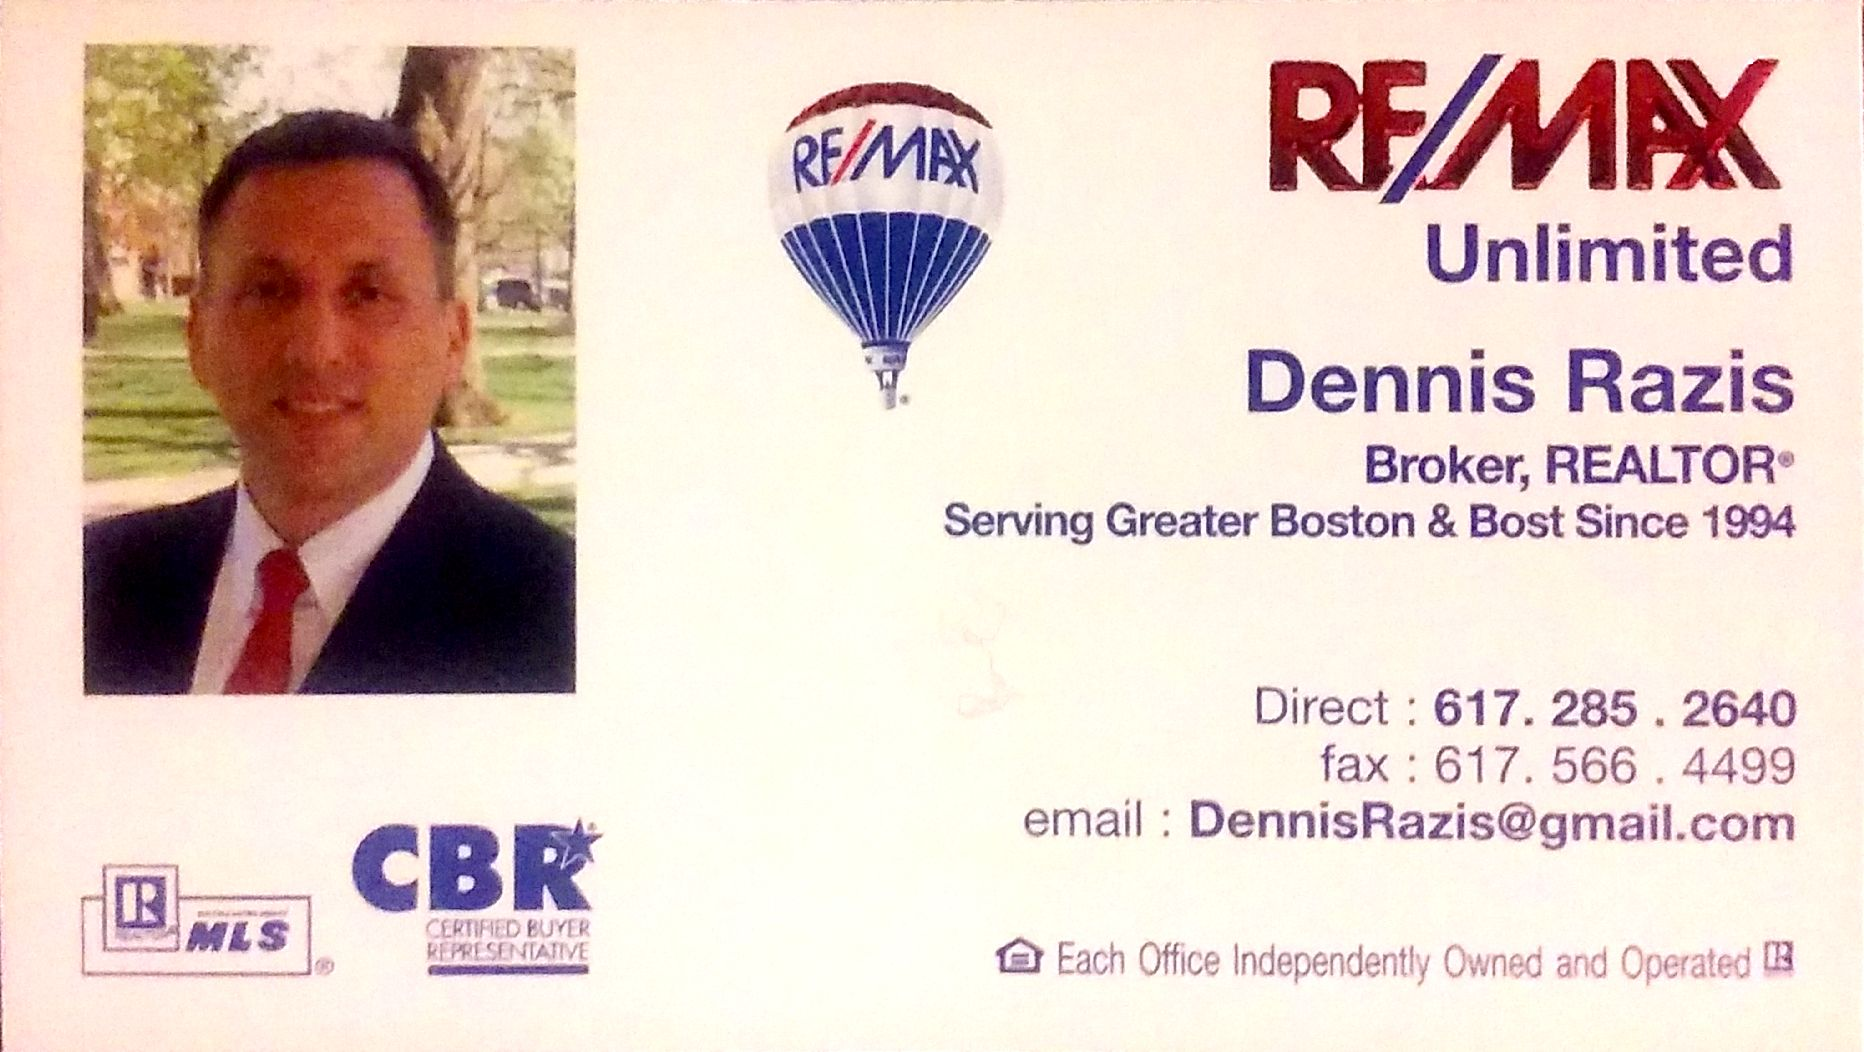 Dennis Razis, RE/MAX Unlimited, Brookline, MA